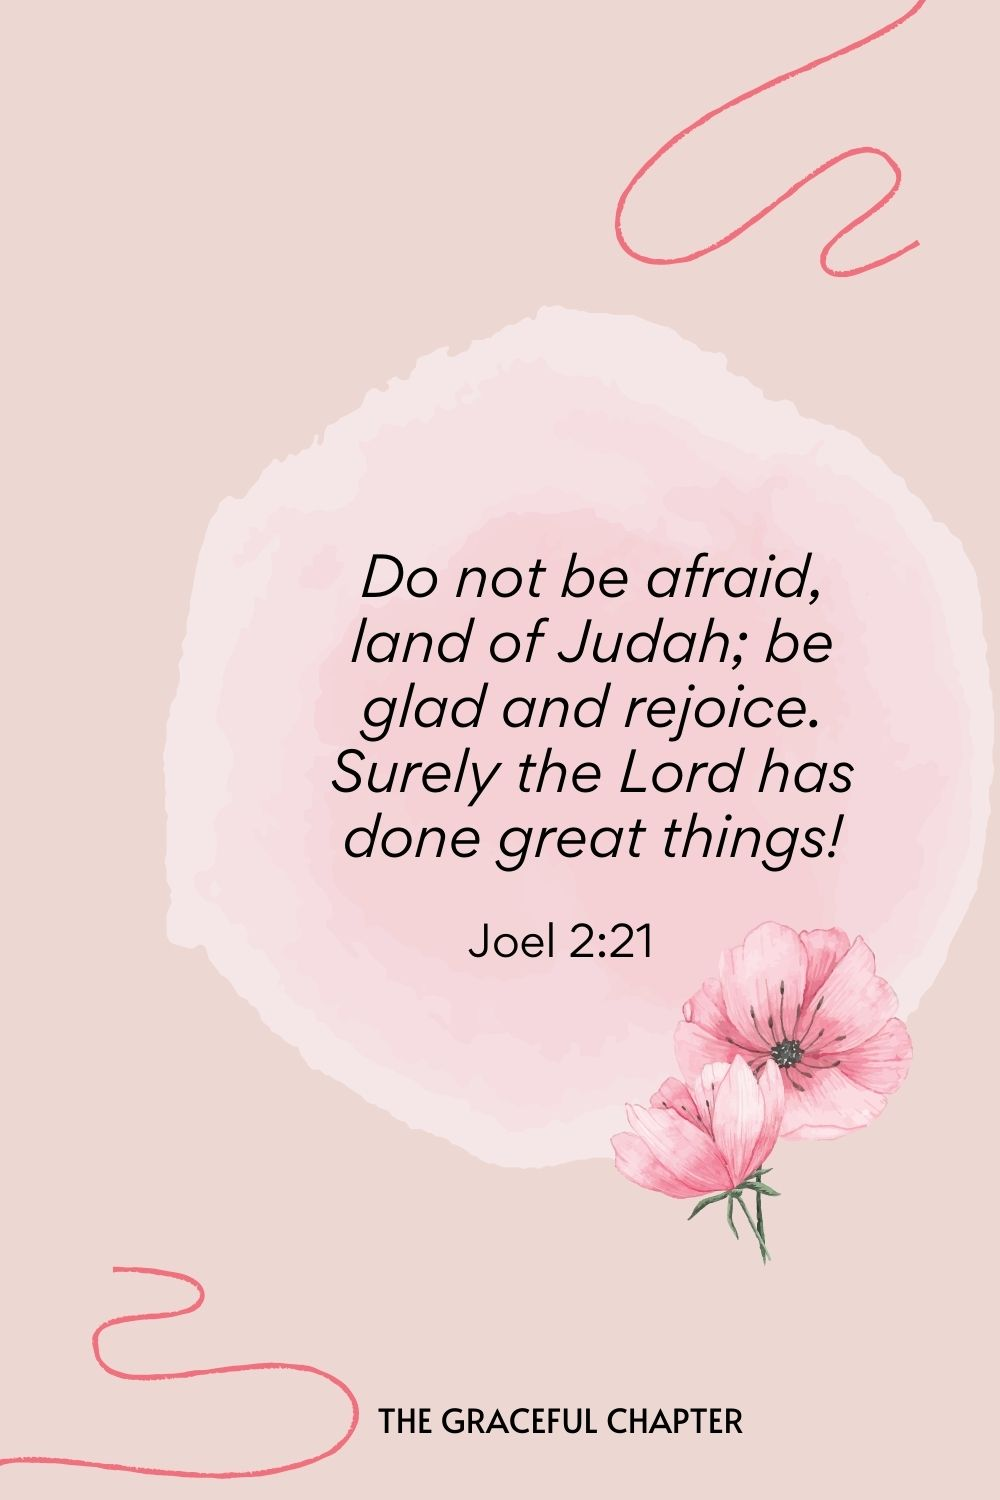 Do not be afraid, land of Judah; be glad and rejoice. Surely the Lord has done great things!  Joel 2:21